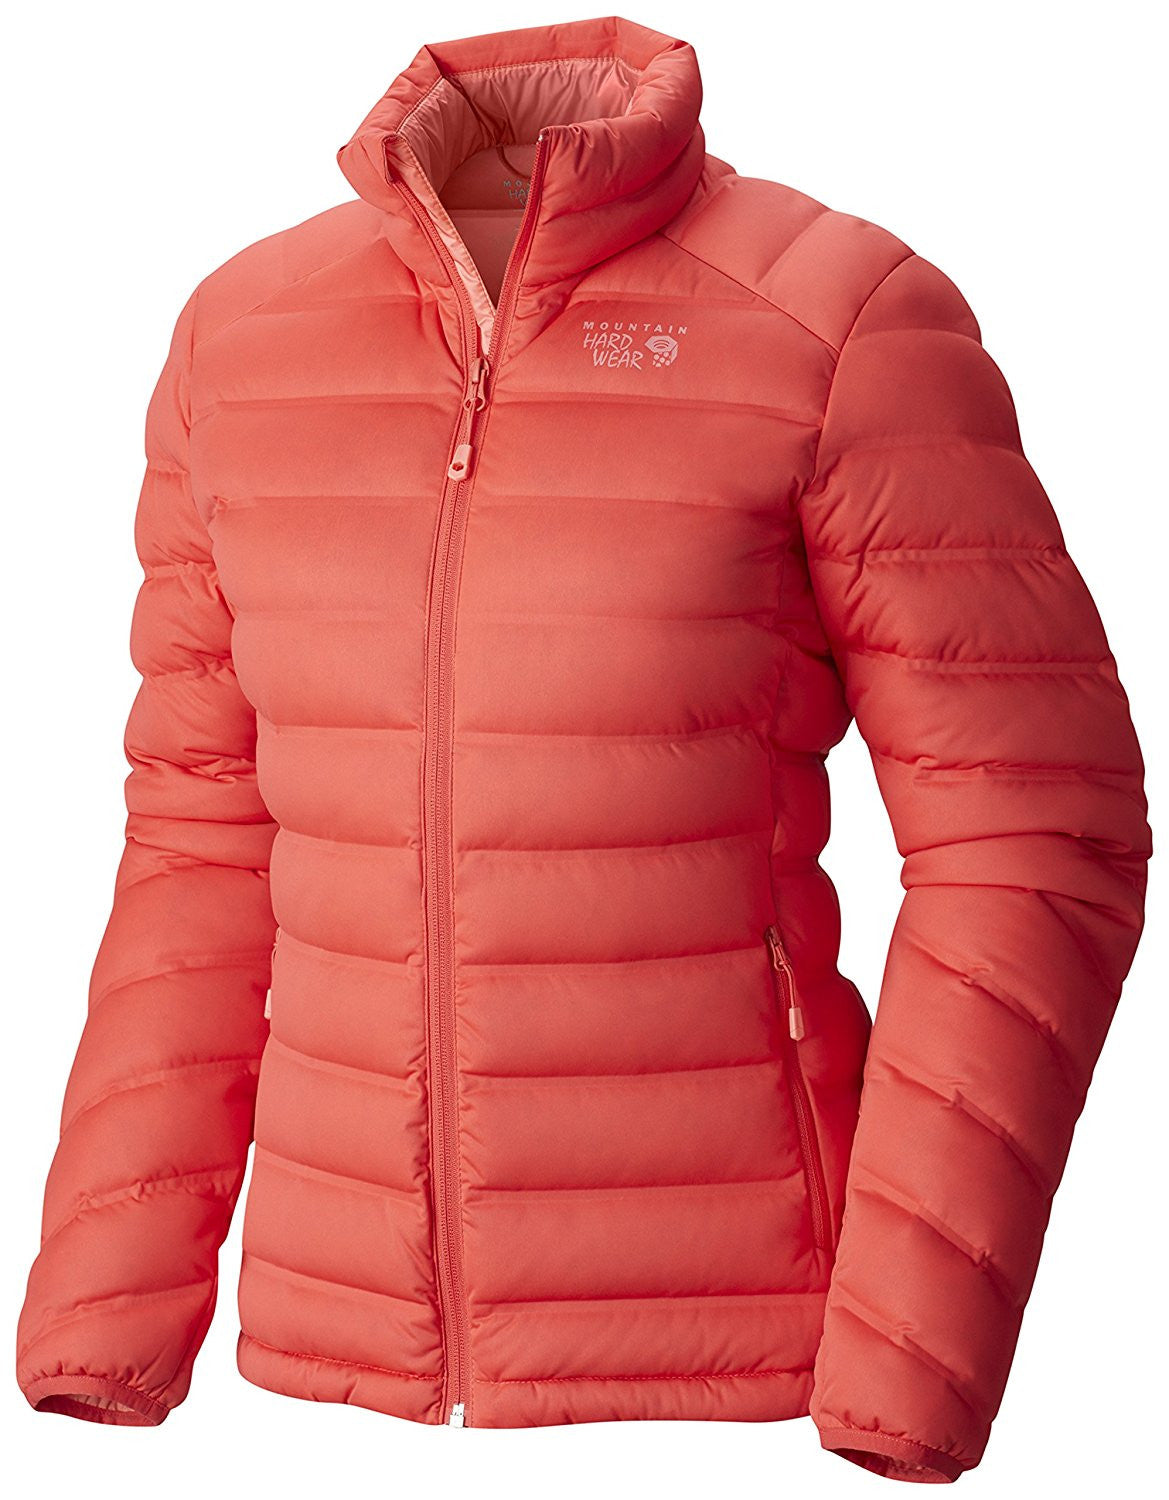 Mountain Hardwear StretchDown Jacket Women's